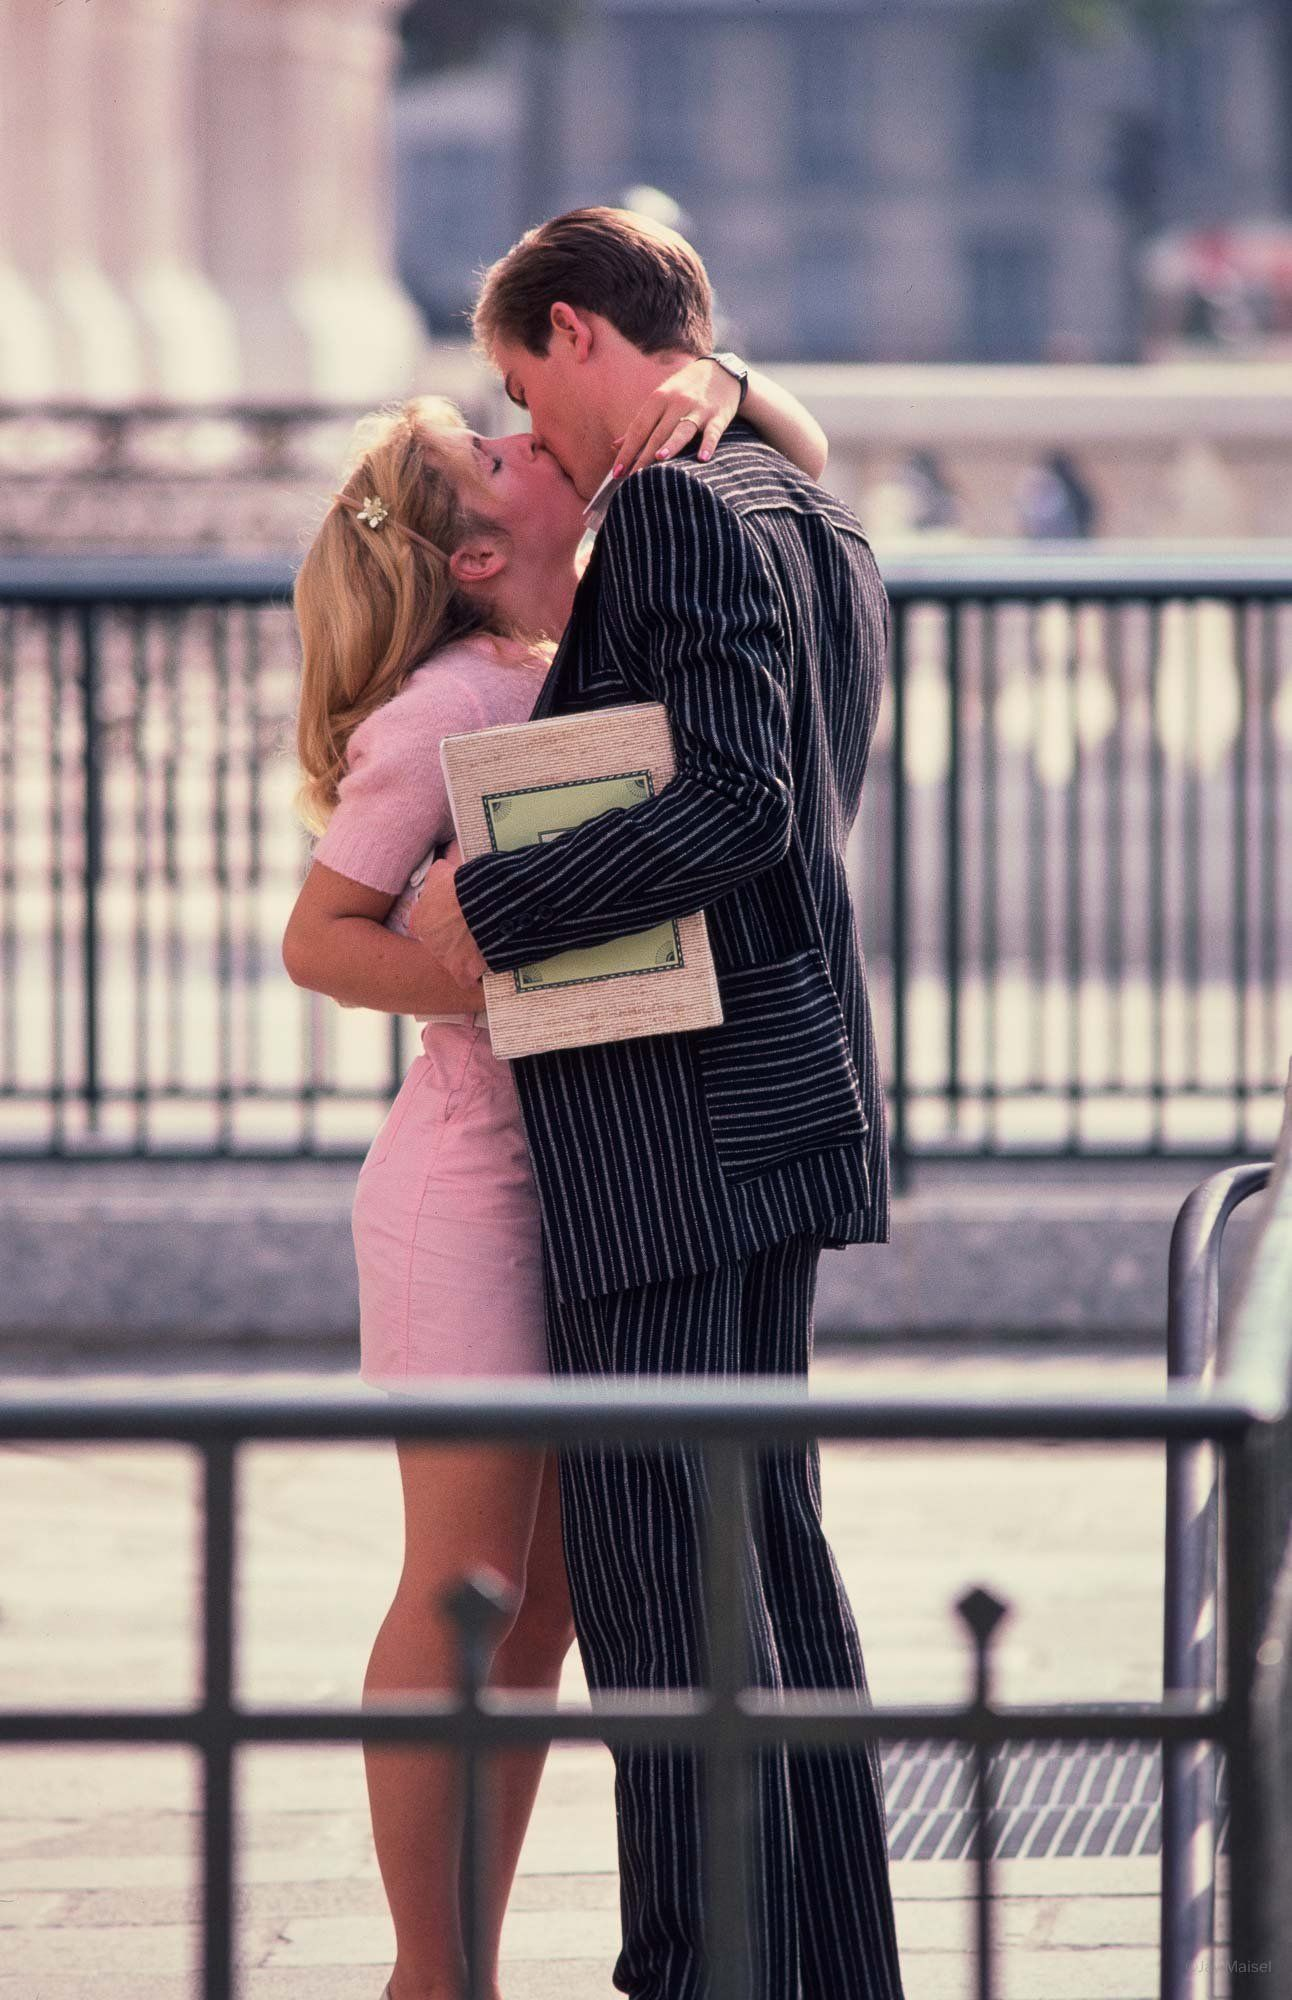 Couple Kissing Jay Maisel With Images Jay Maisel